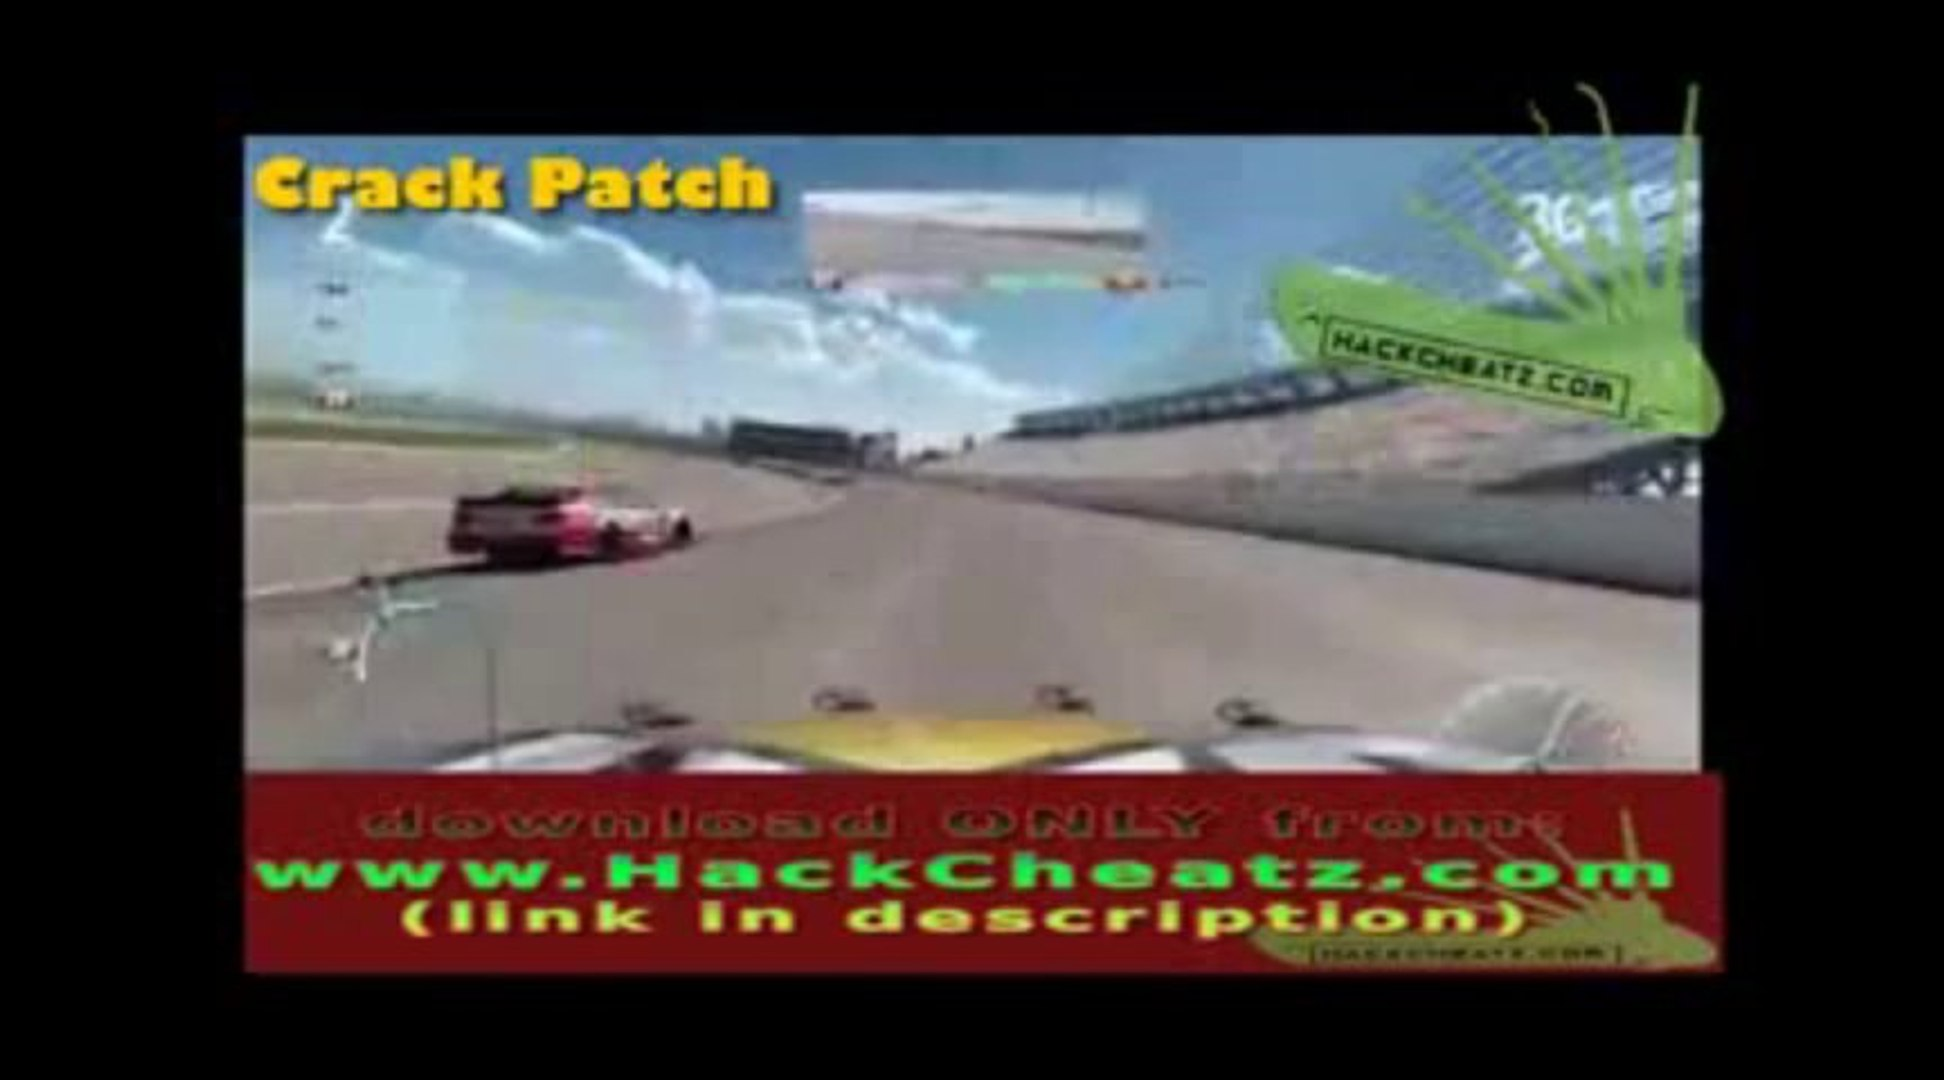 Nascar The Game 2013 crack patch verified [Nascar The Game 2013 Crack 2013] download